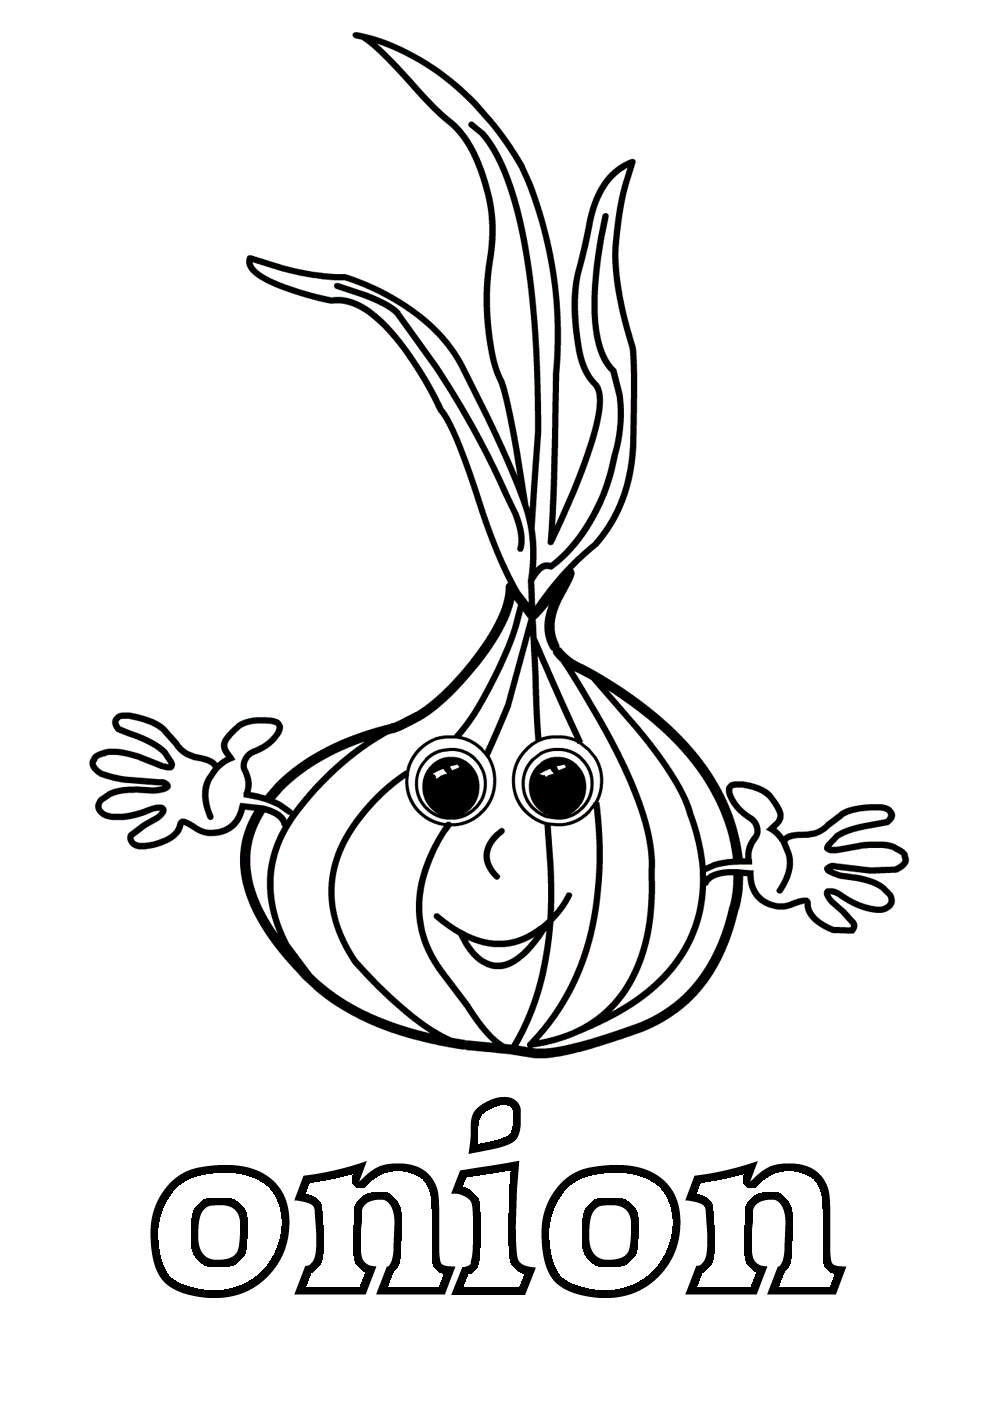 onion coloring pages to download and print for free